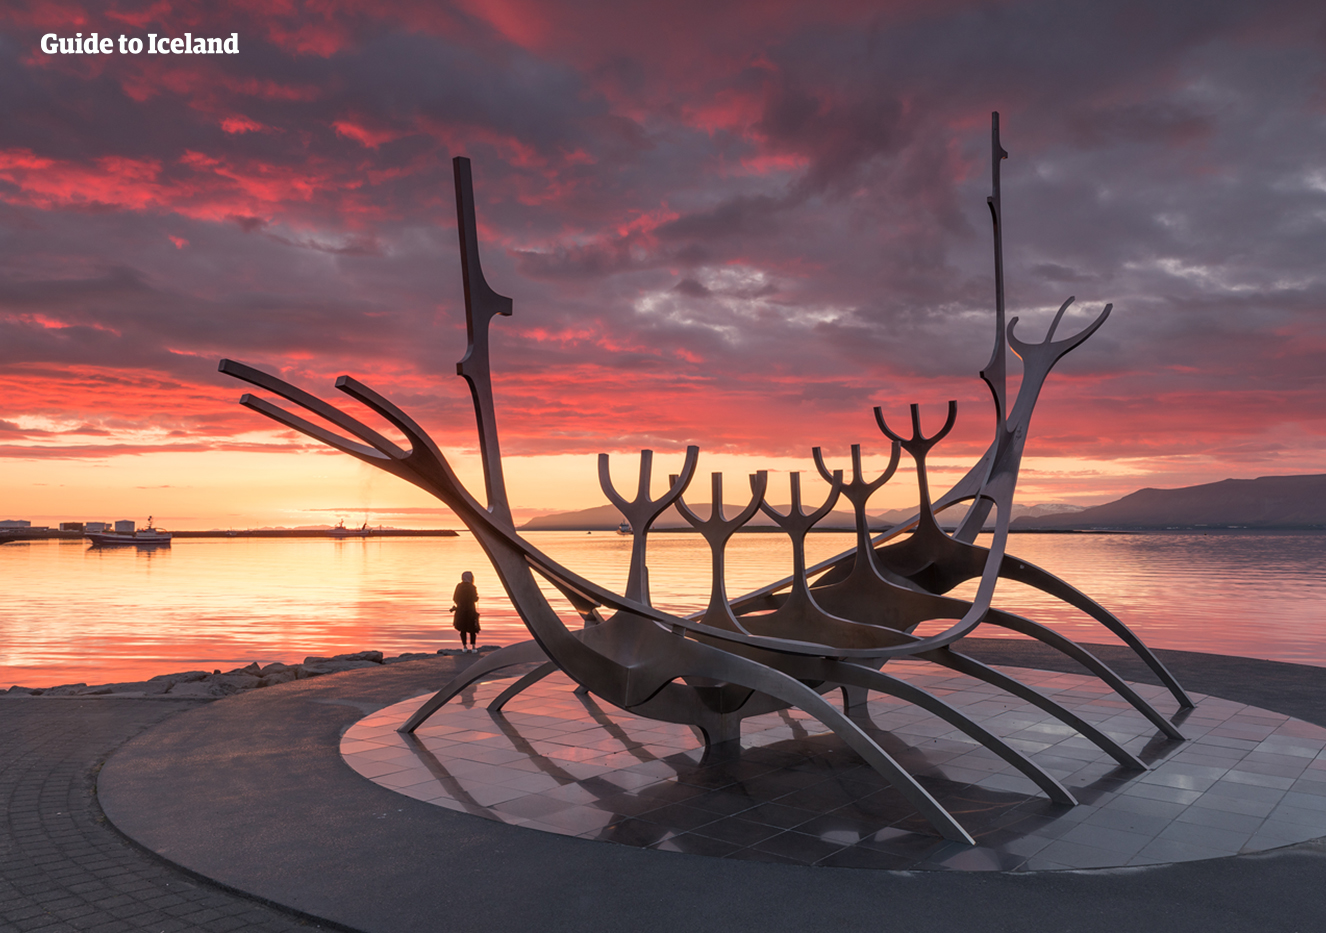 The Sun Voyager Monument which sits on the shoreline of Reykjavik, Iceland's capital city.